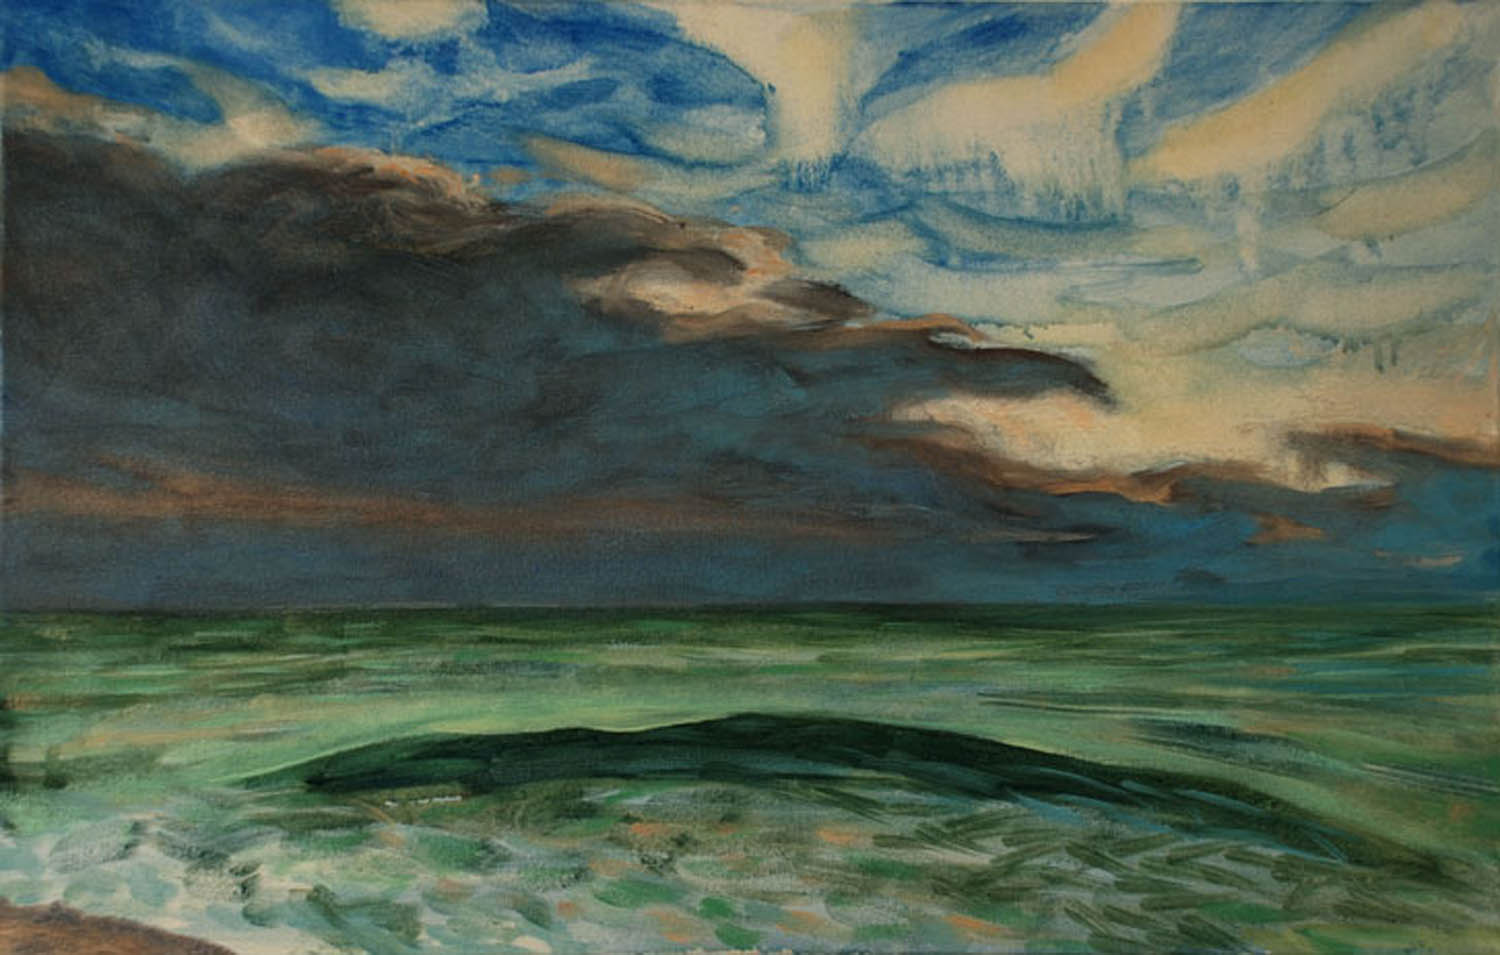 Storm at Seaside, Green Wave, oil on canvas